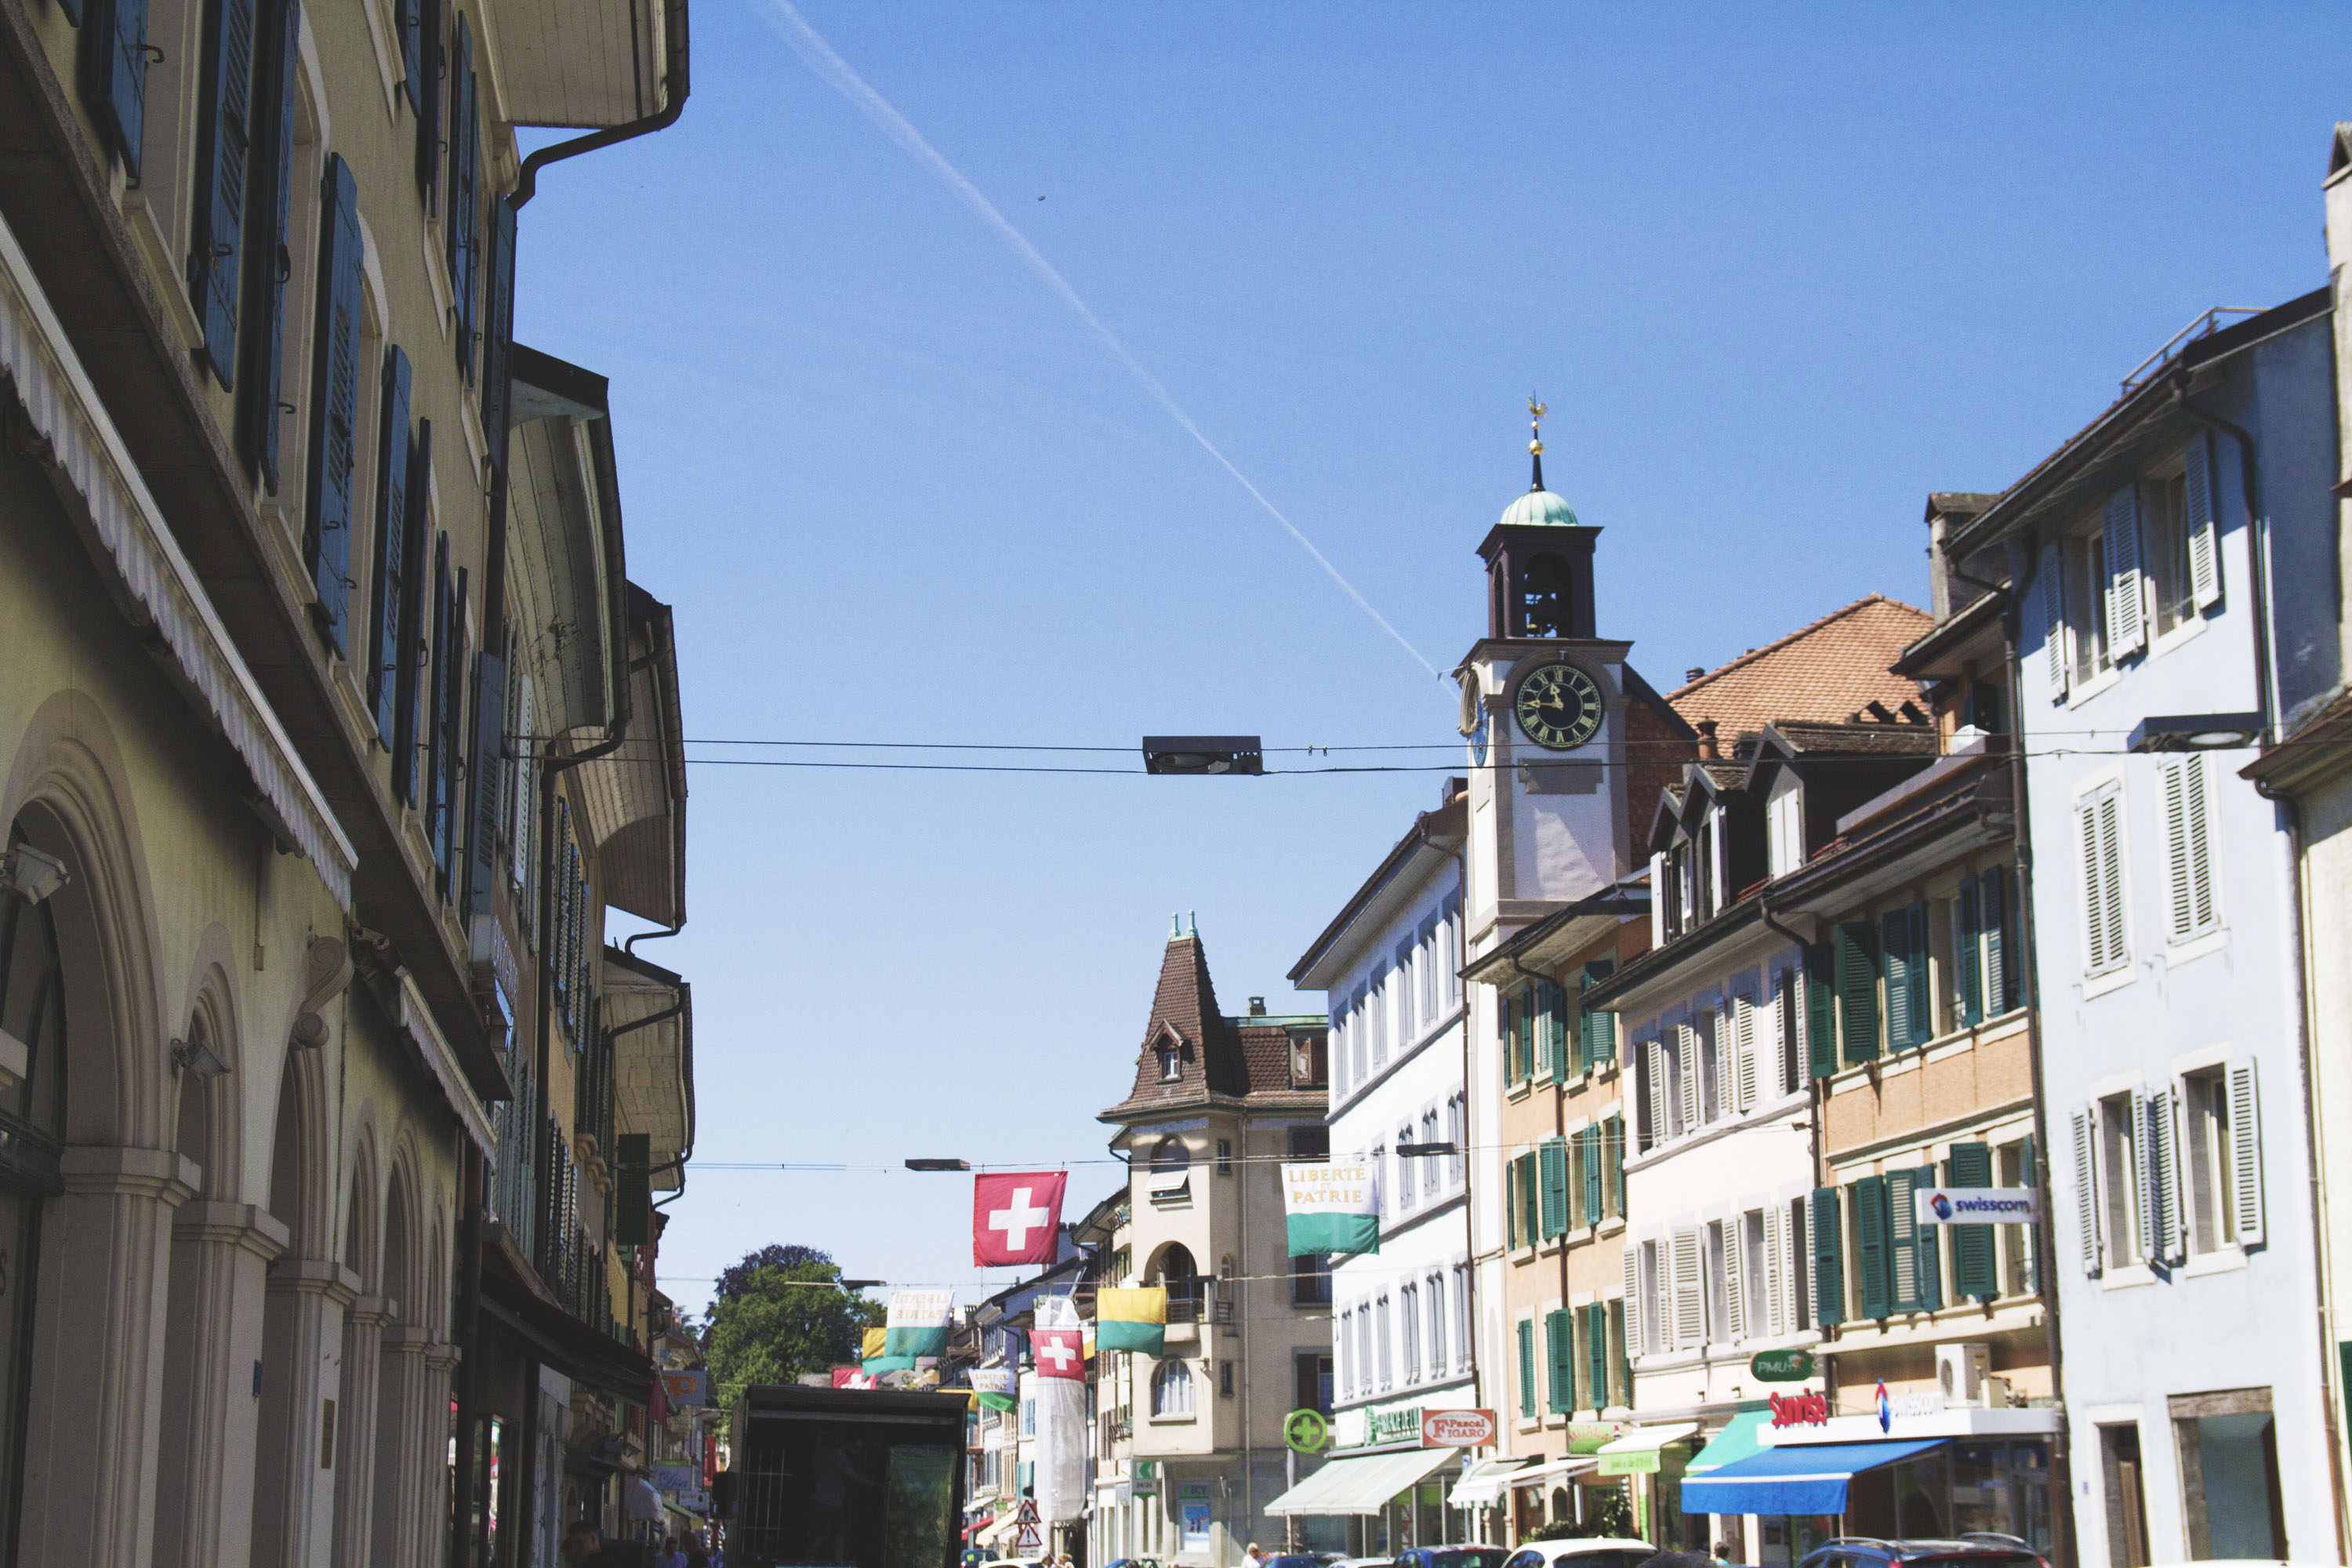 mariebabeau_graphiste freelance_photographe freelance_strasbourg_france_vacances_Suisse-road trip_-10